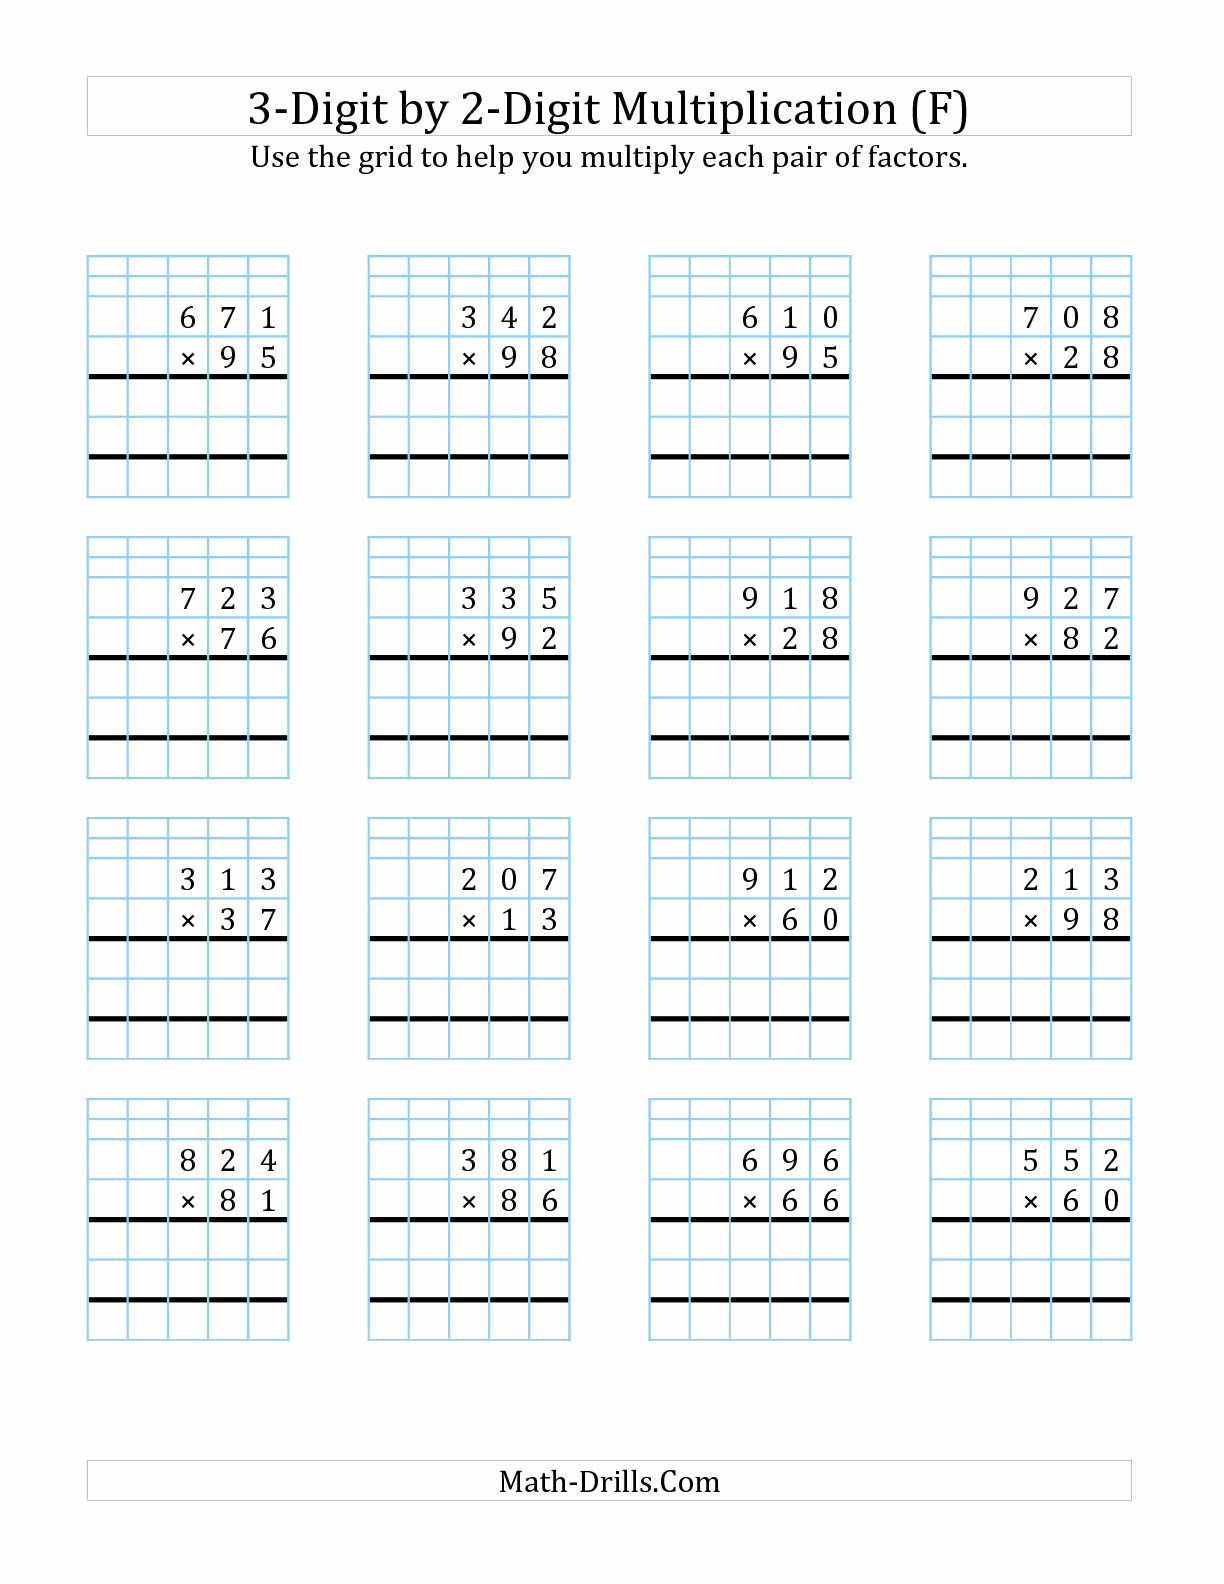 2 Digit by 2 Digit Multiplication Worksheets with Grids Awesome the 3 Digit by 2 Digit Multiplication with Grid Support F